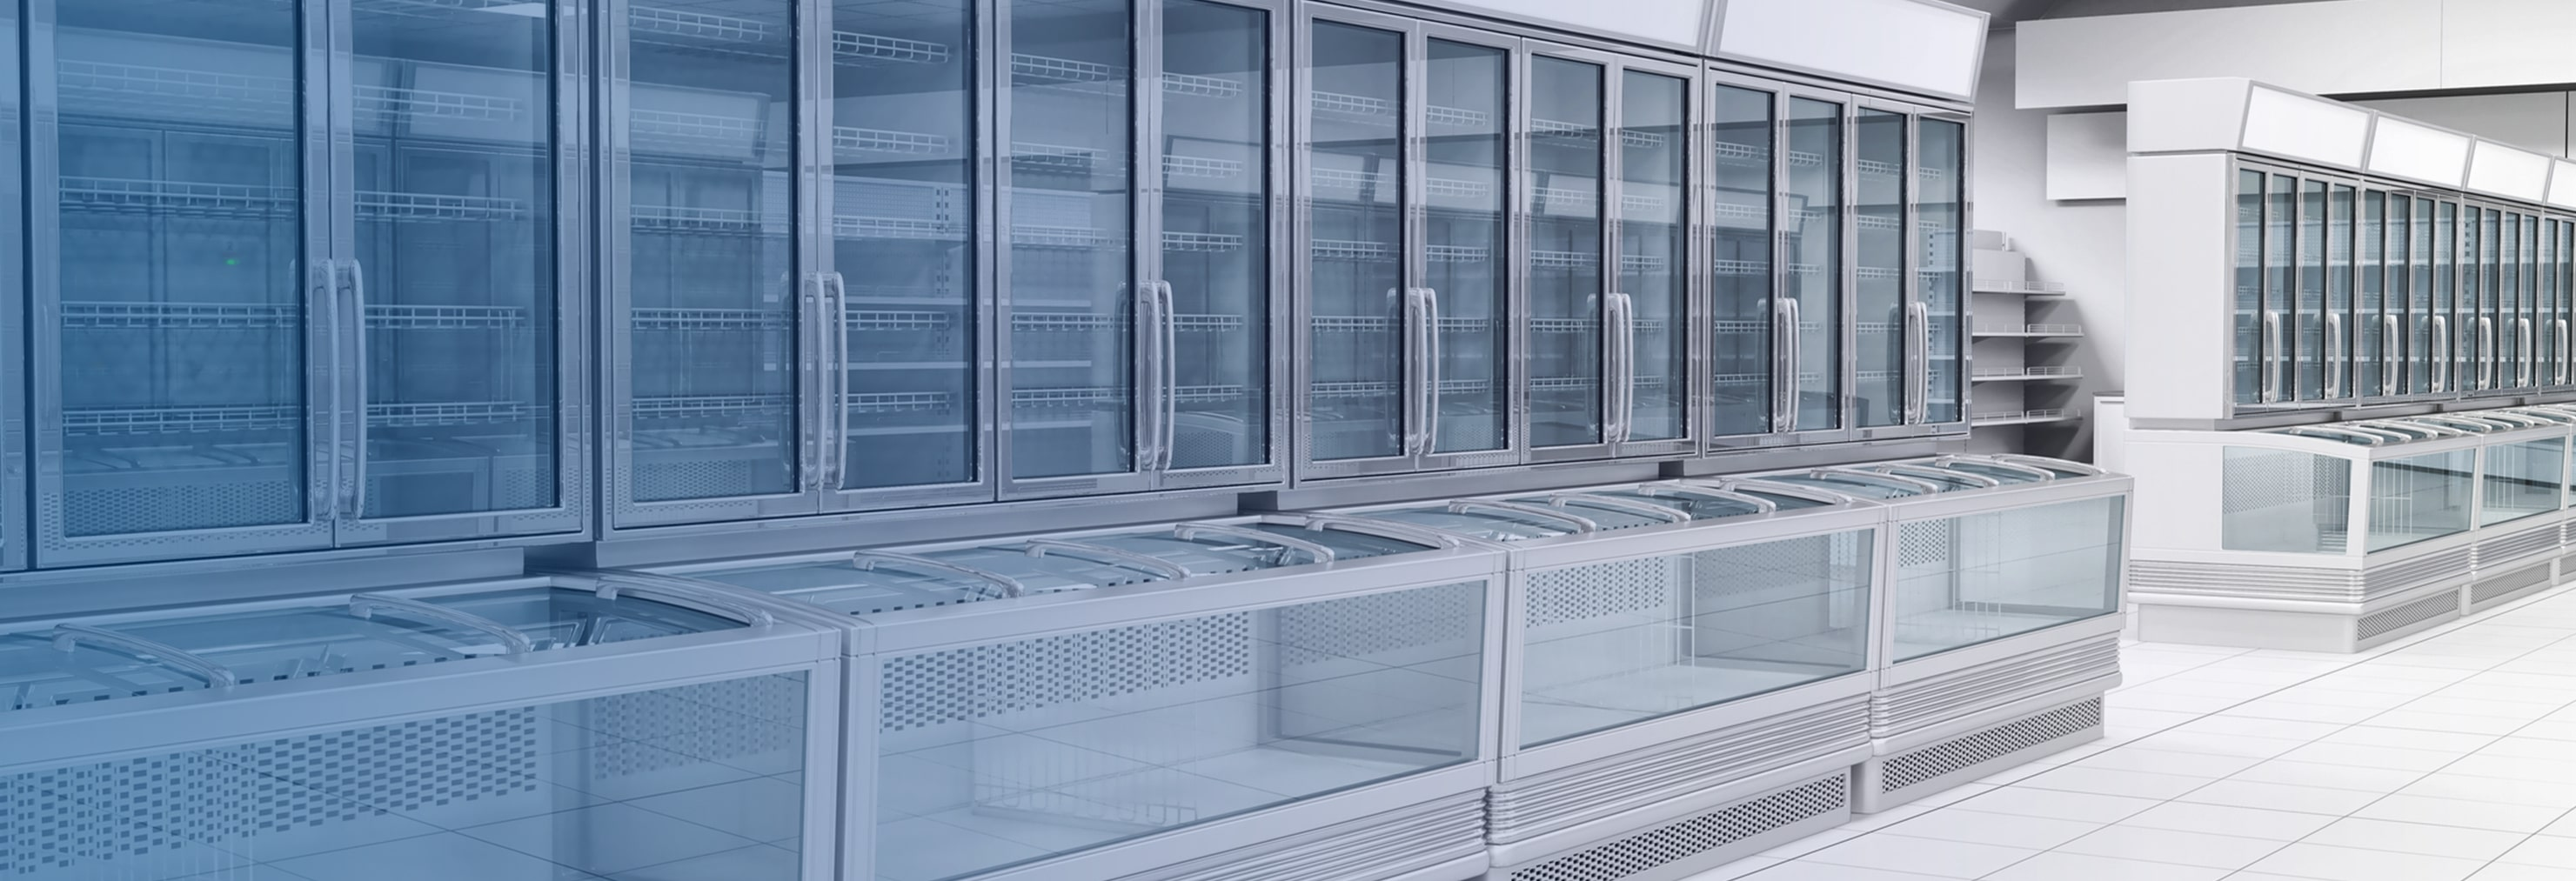 Commercial Refrigeration Services